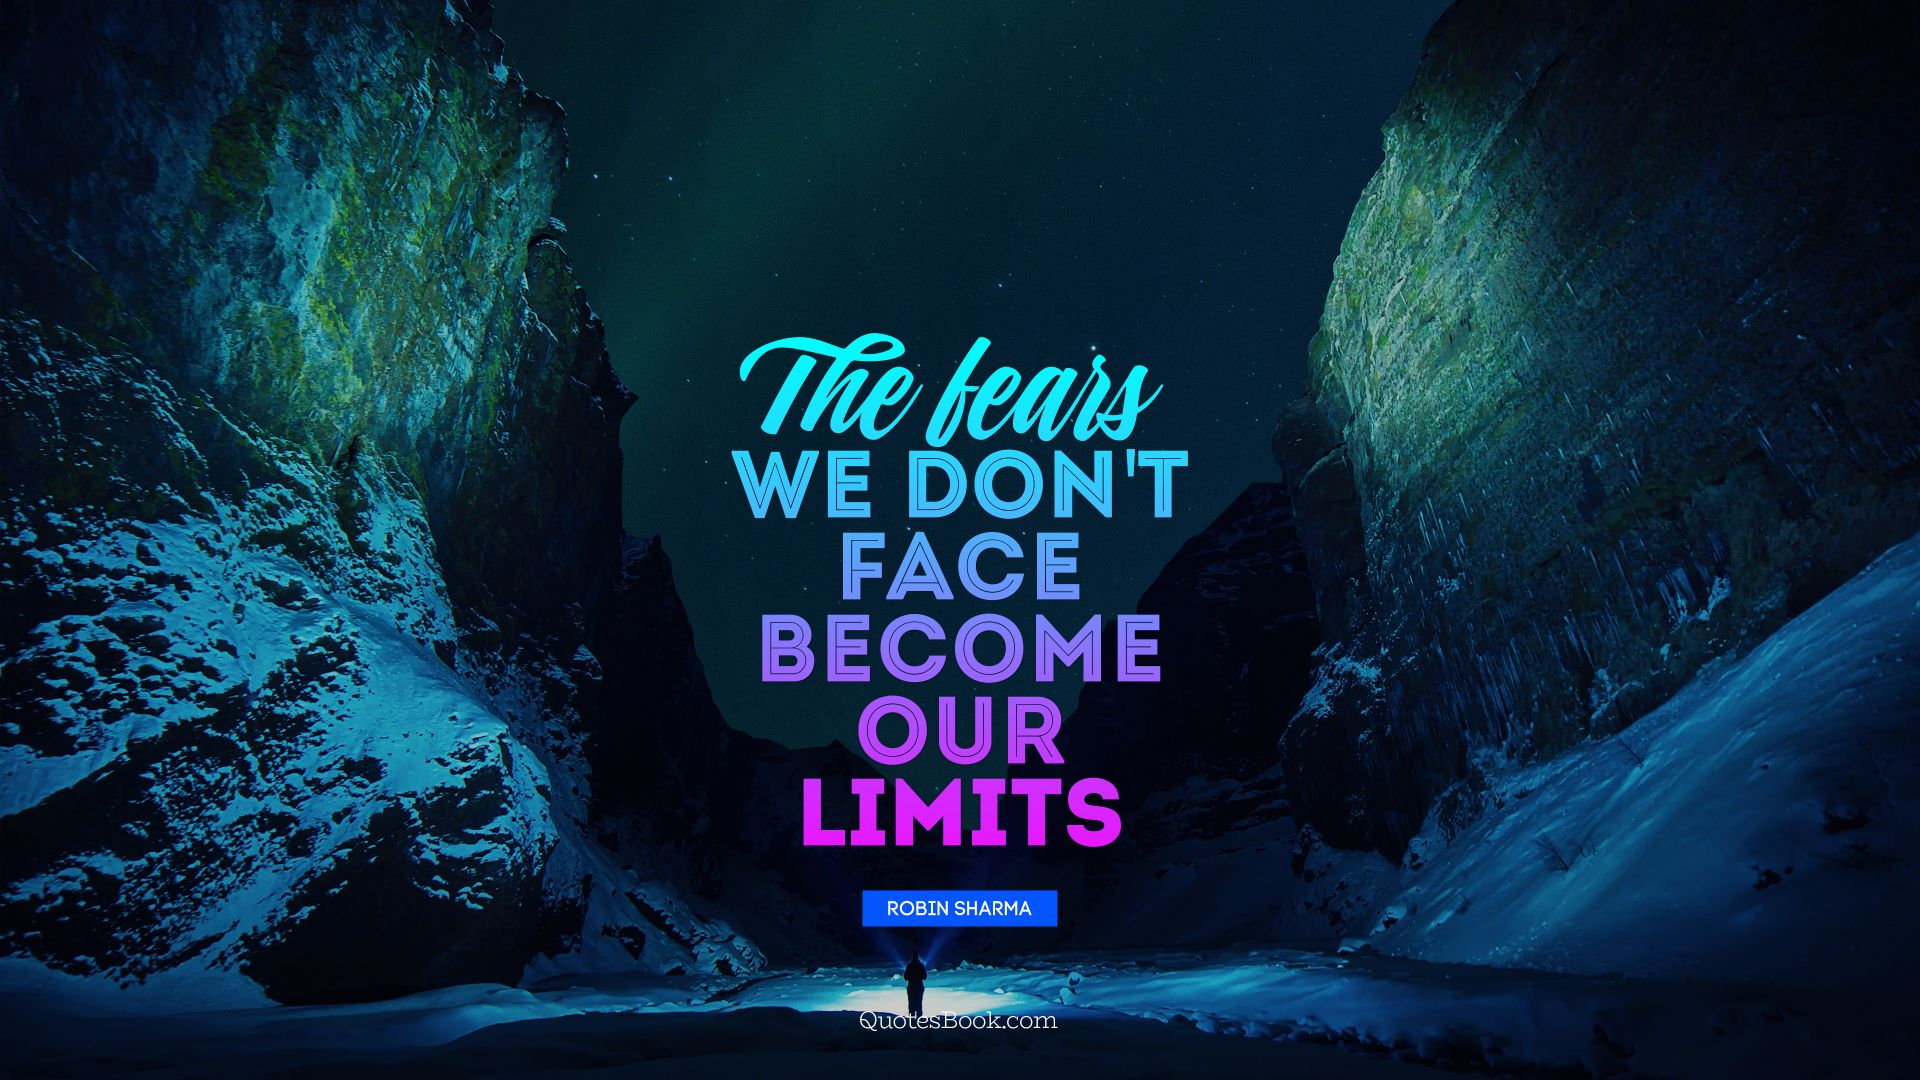 The fears we don't face become our limits. - Quote by Robin Sharma